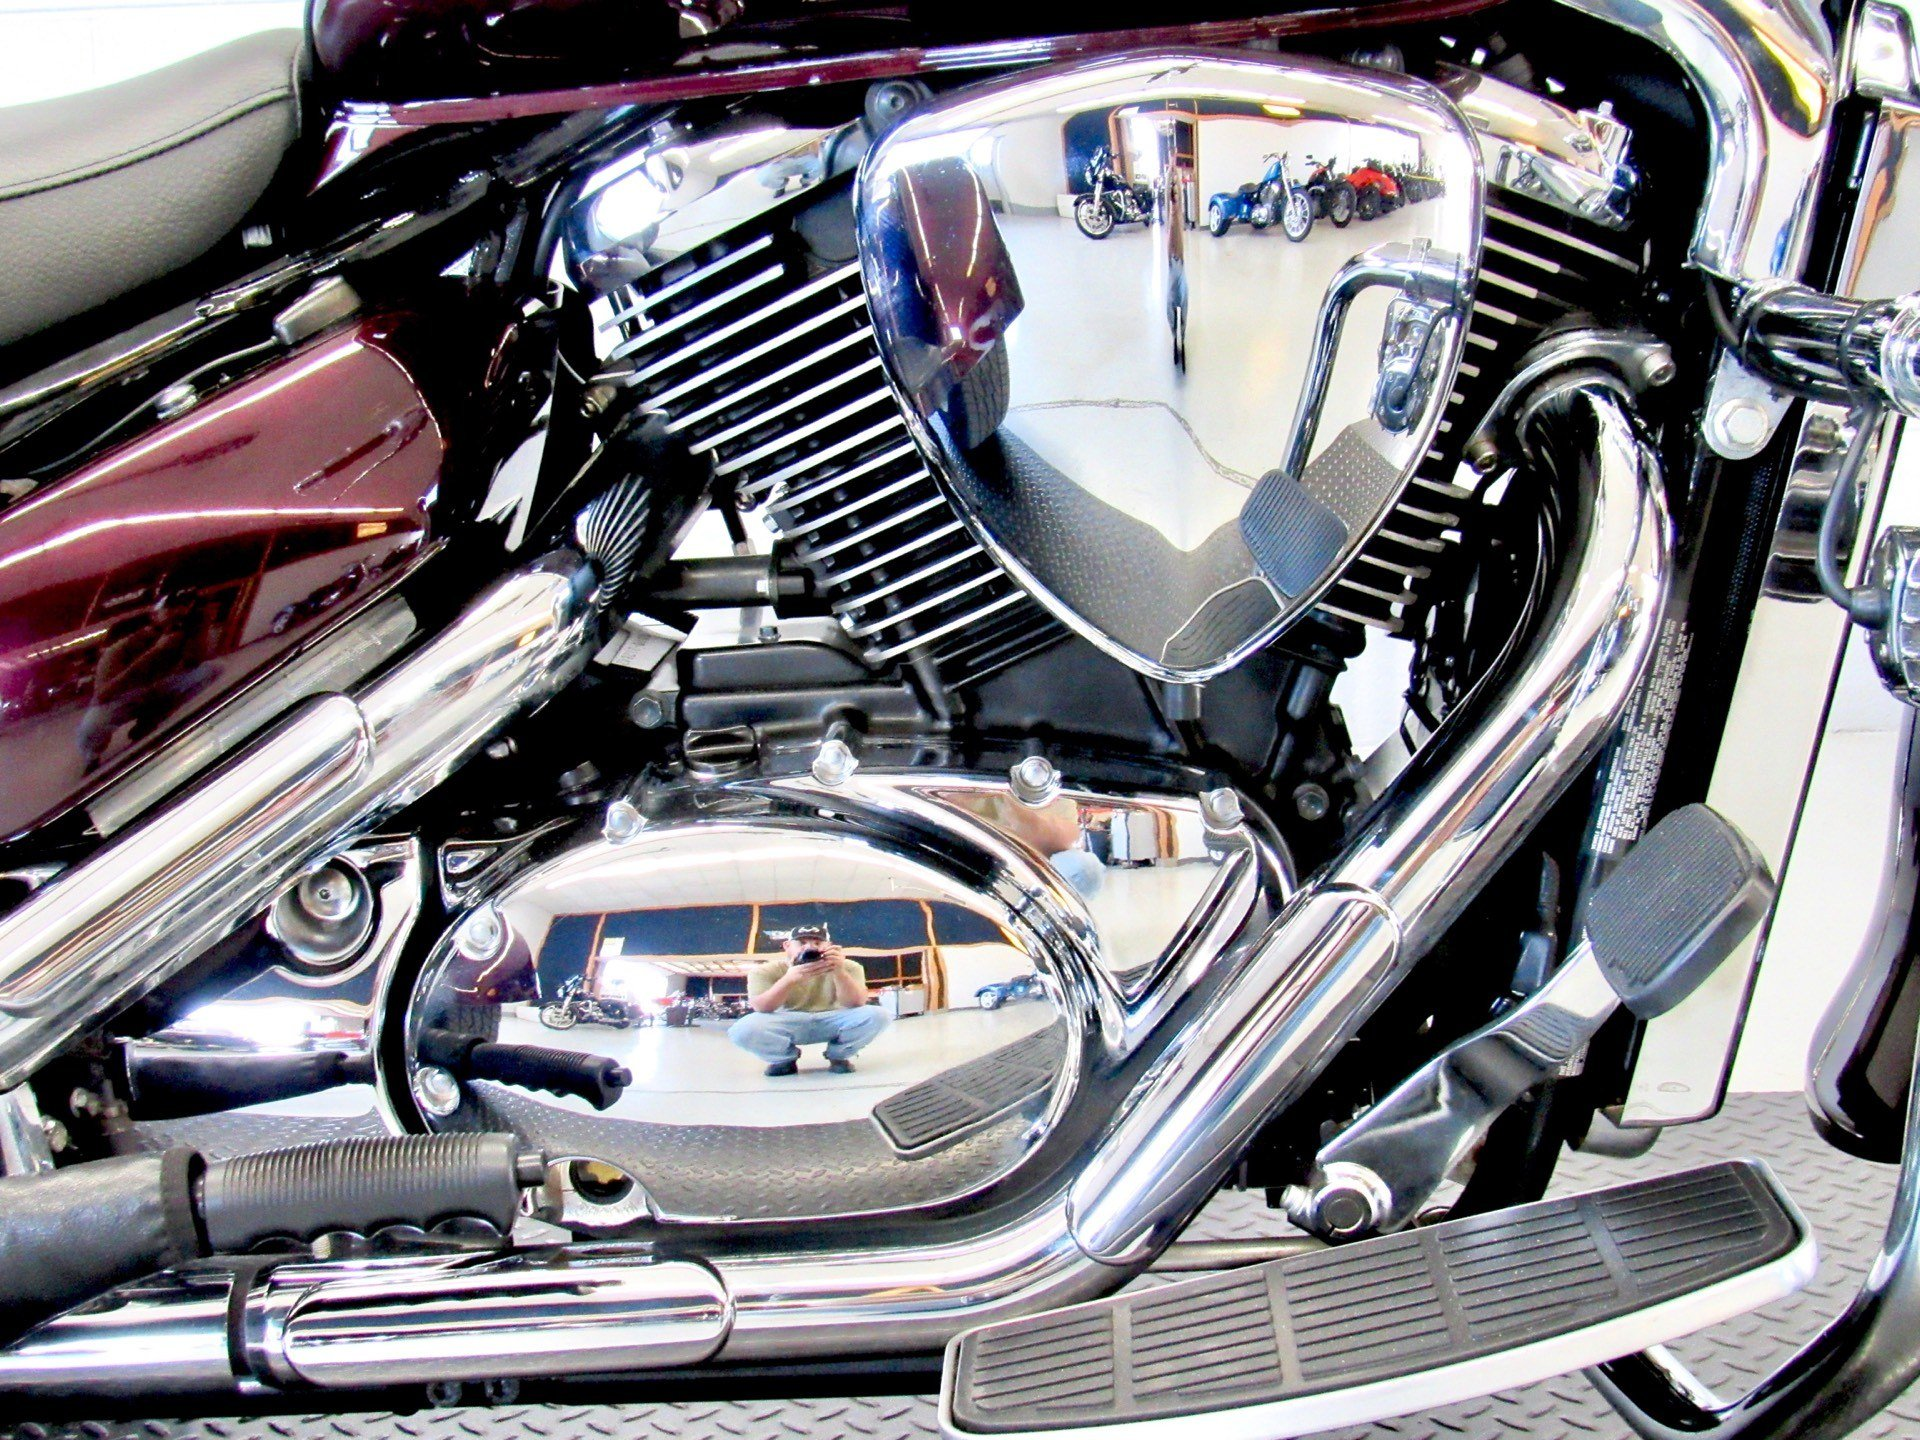 2009 Suzuki Boulevard C50 in Fredericksburg, Virginia - Photo 14